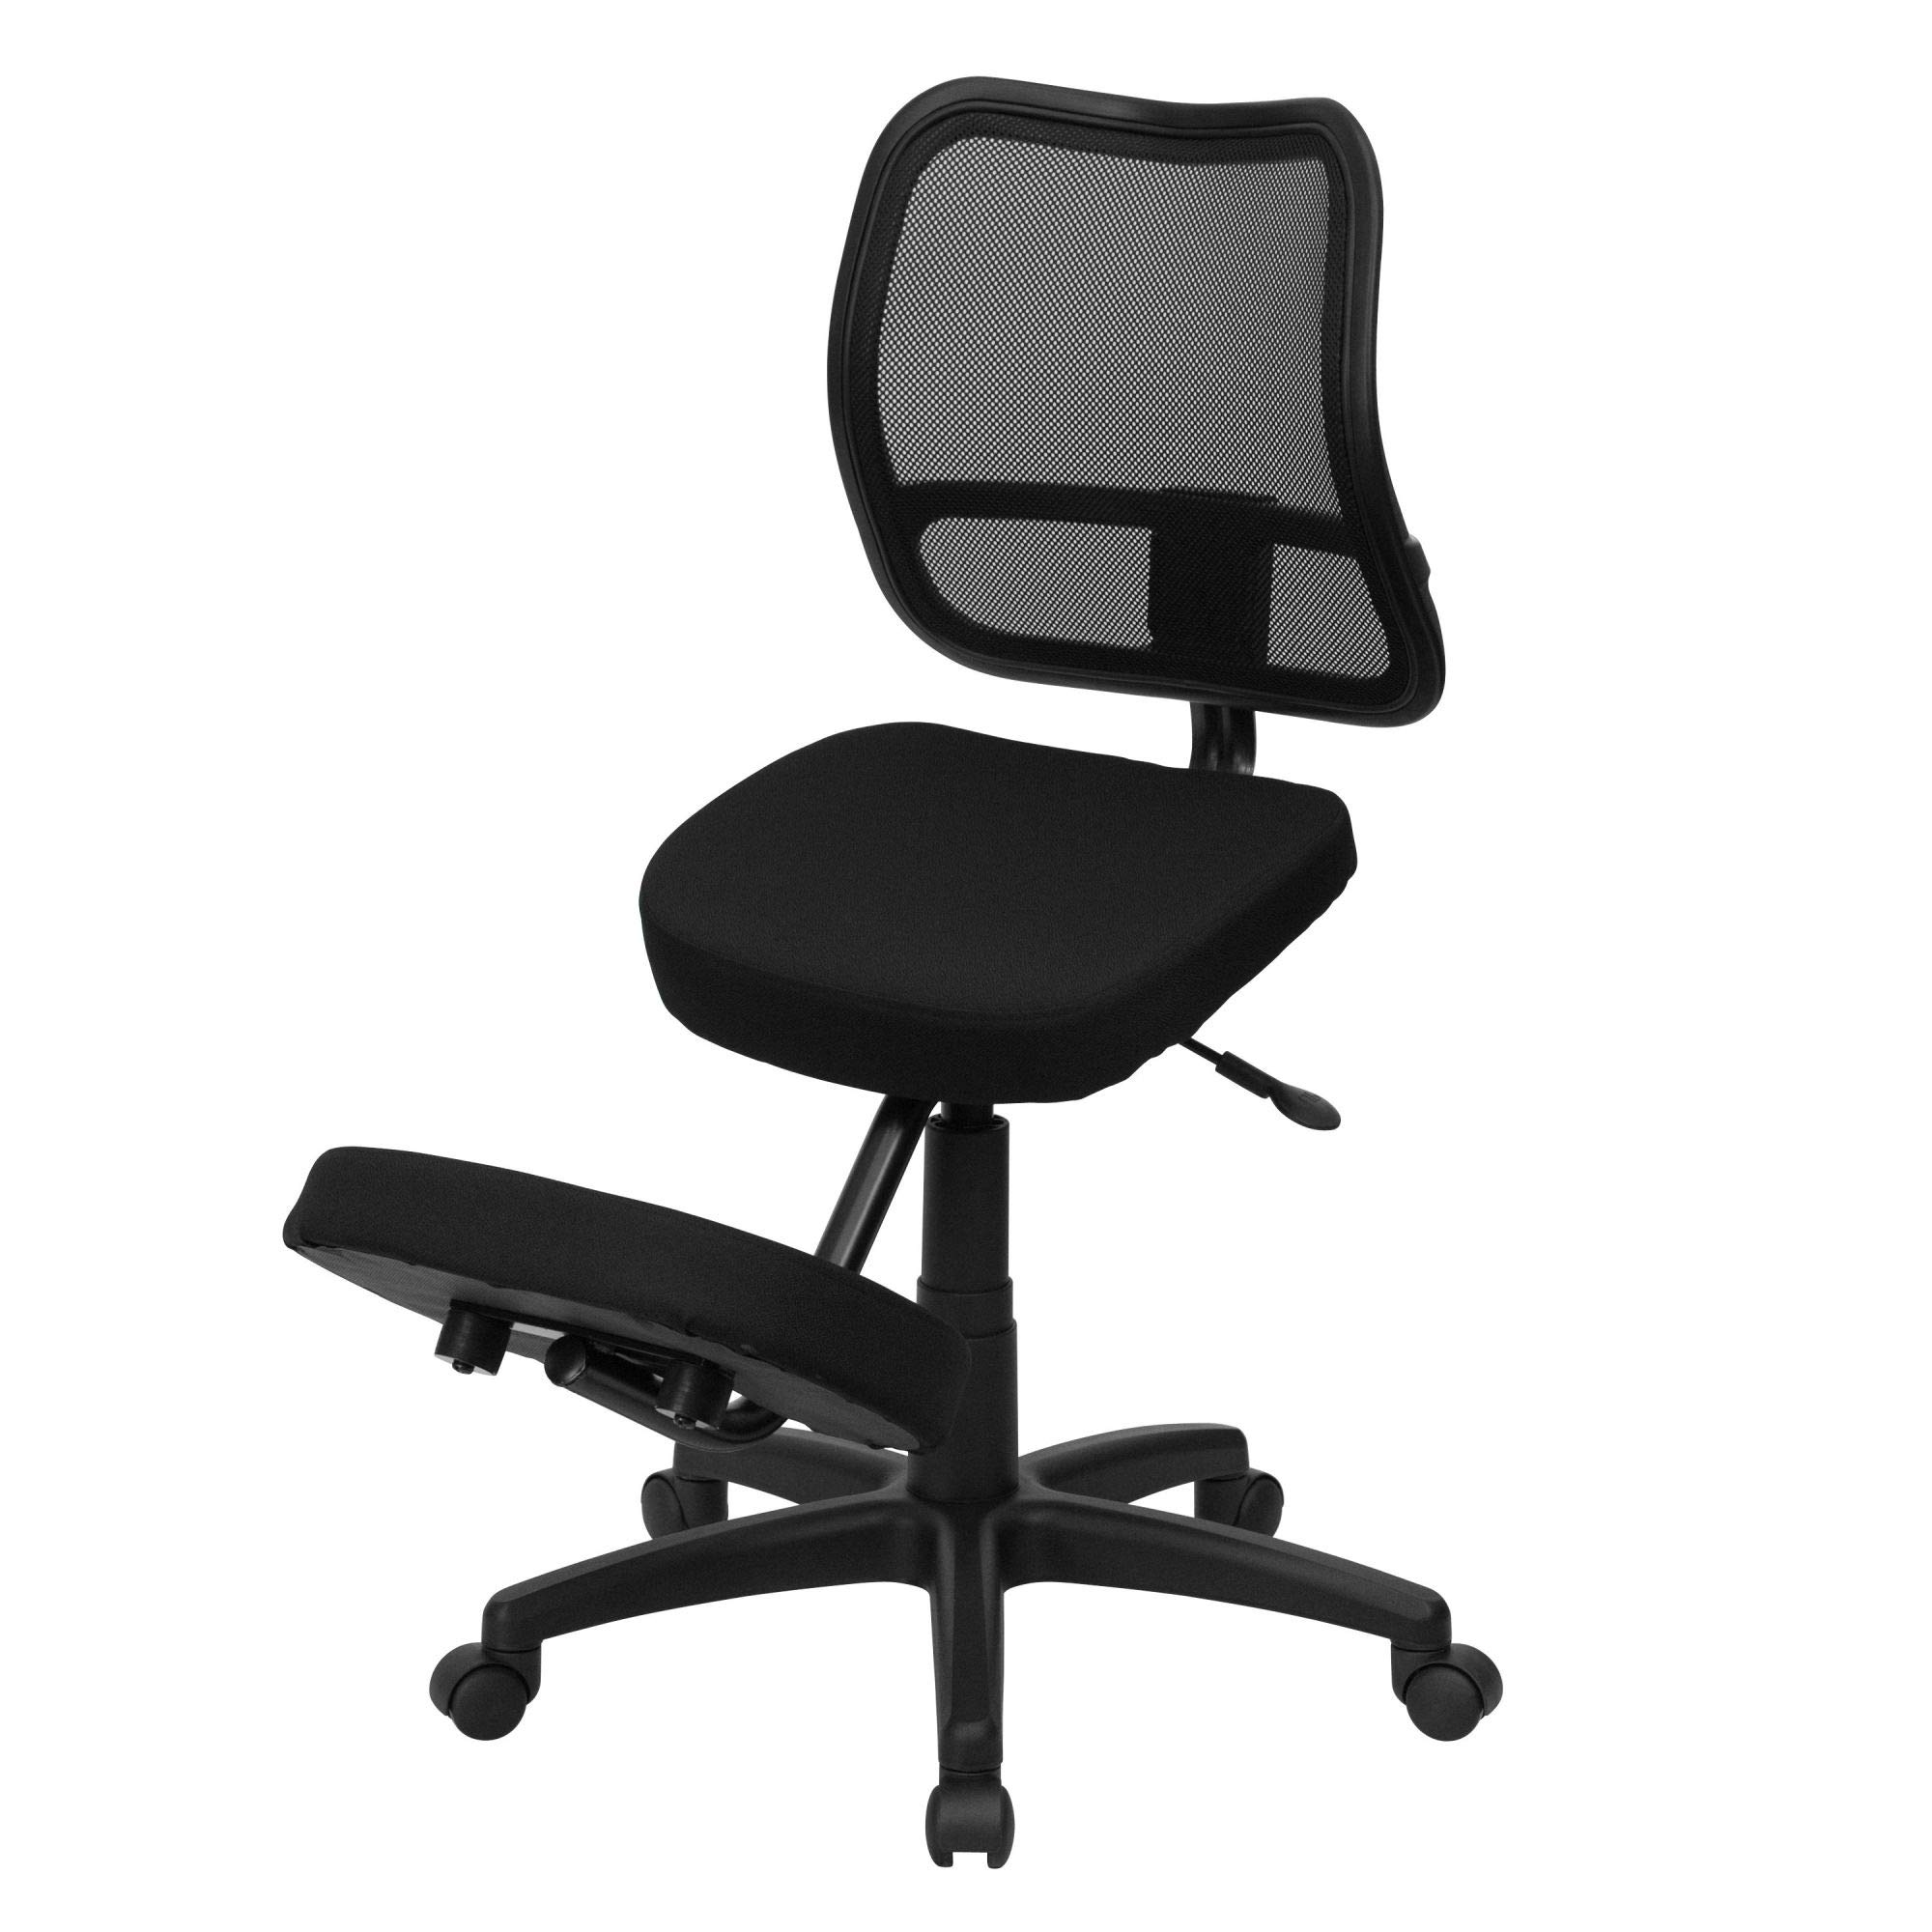 Delacora WL-3425-GG 24.5 Inch Wide Fabric Kneeling Swivel Task Chair with Mesh Back